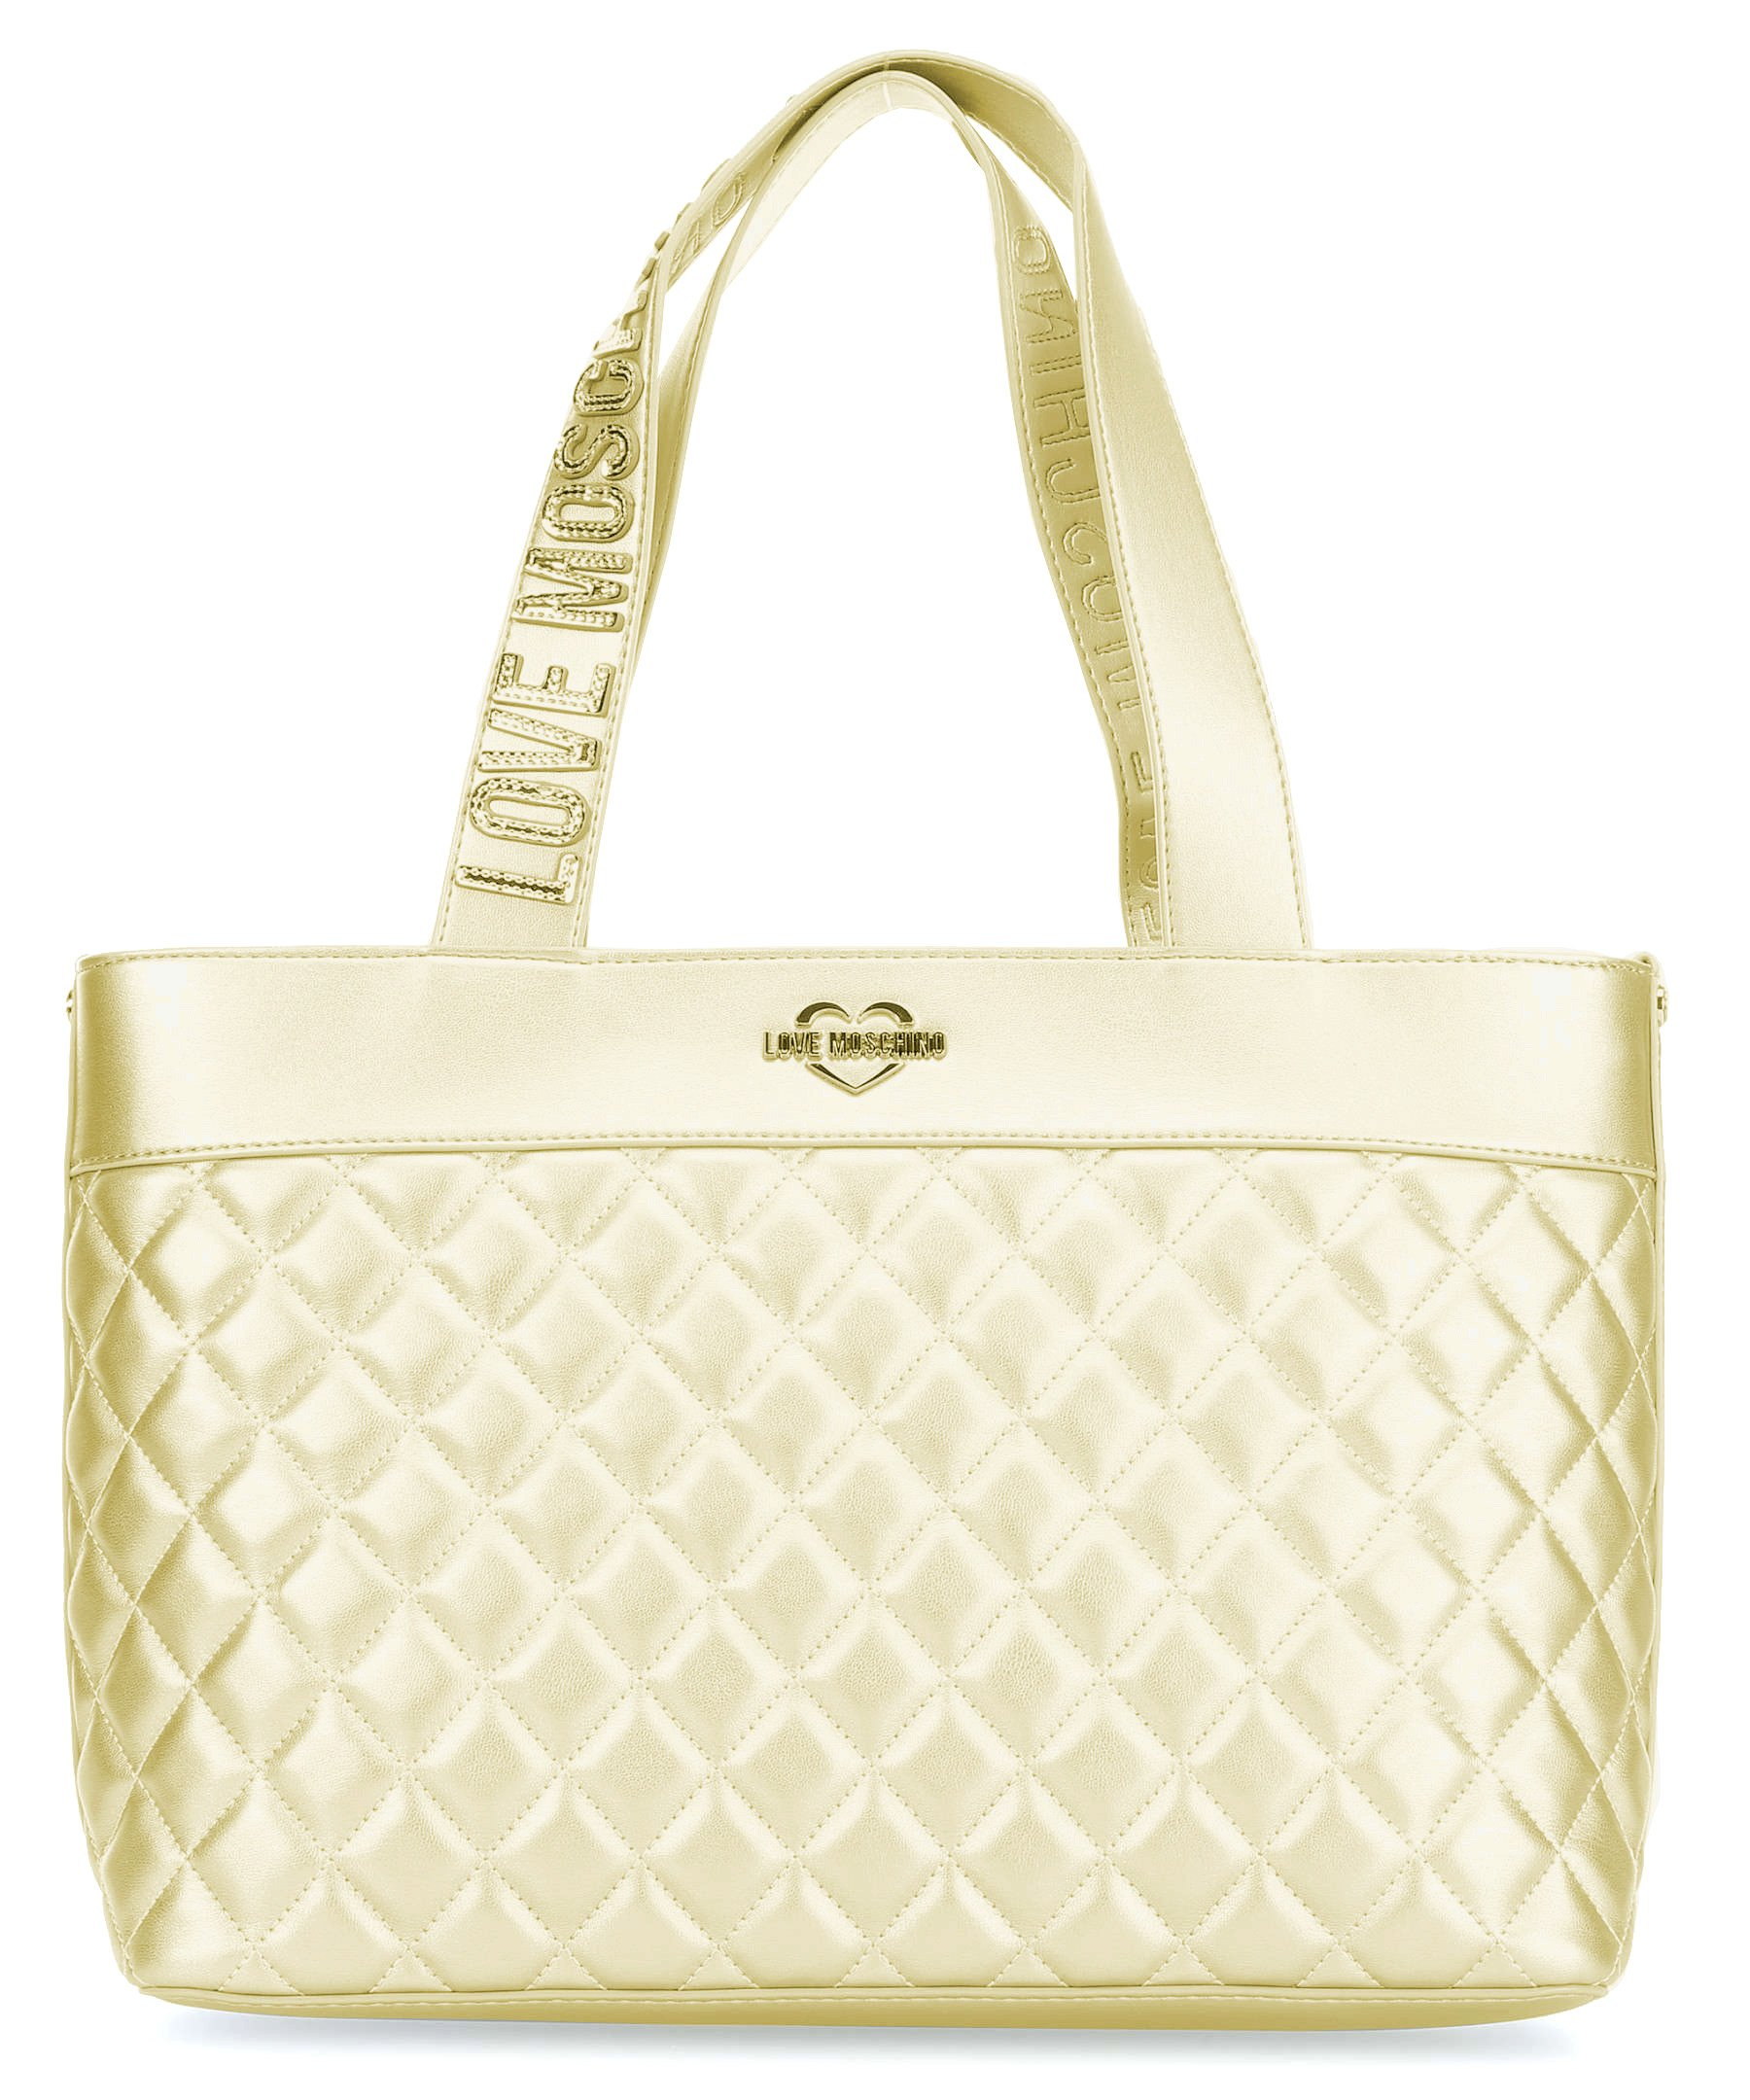 LOVE MOSCHINO Quilted Tote with Gold Metallic Logo Handles, Gold